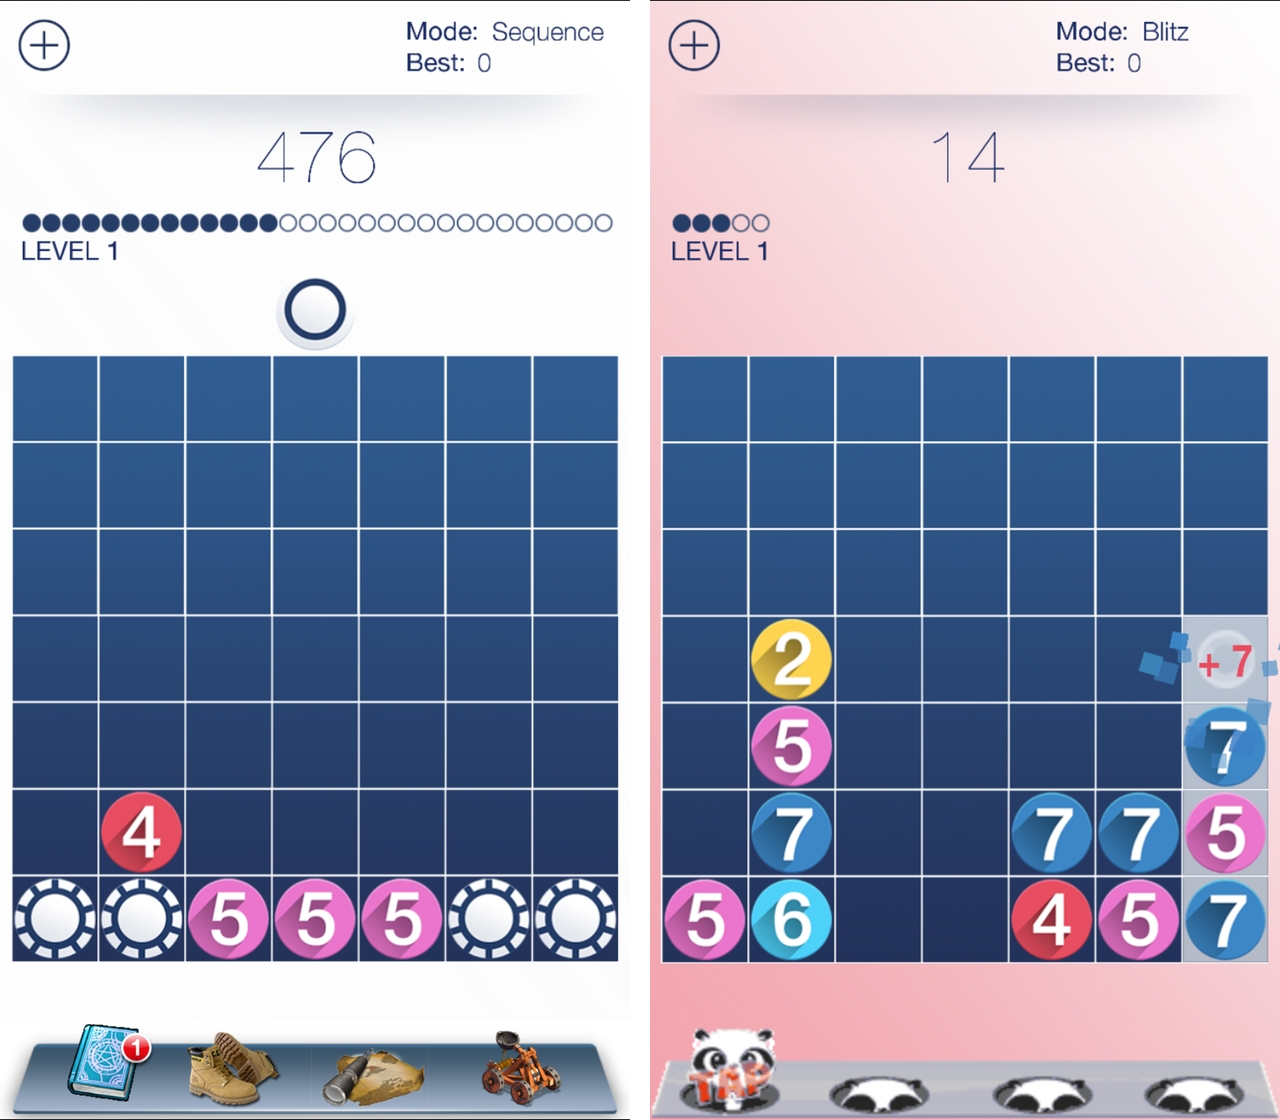 Zynga reboots classic puzzle game Drop7 with mixed results